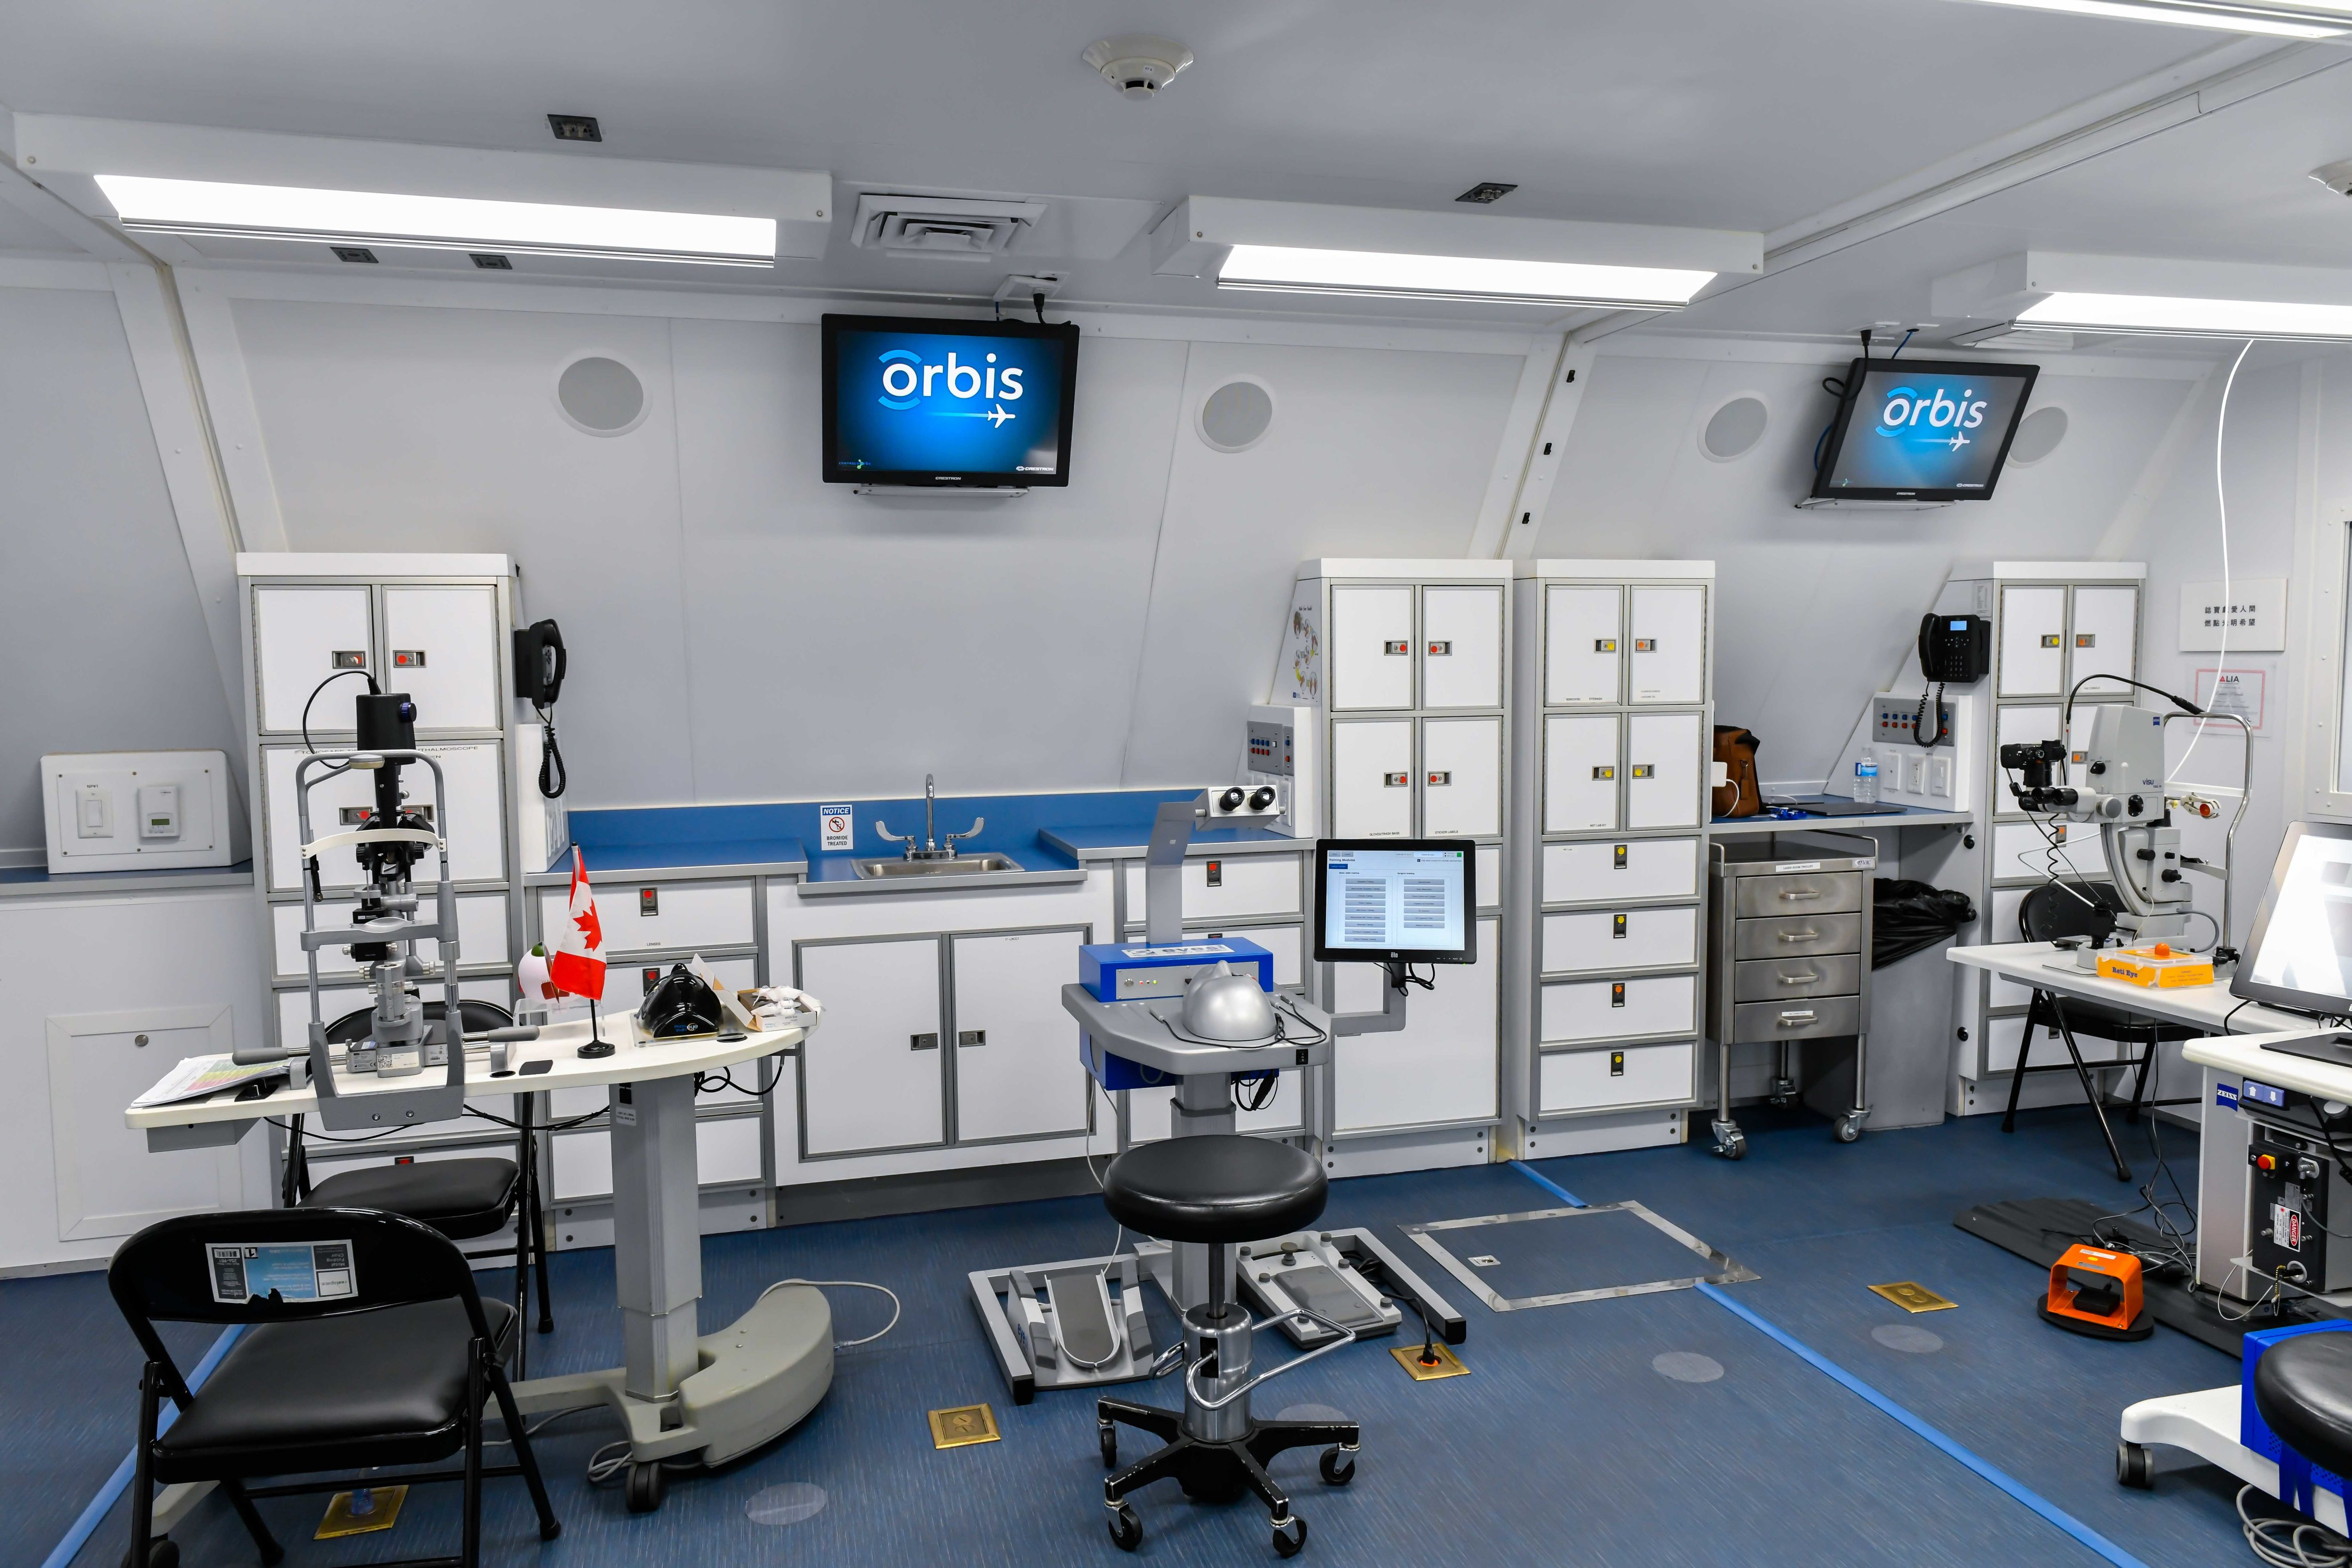 The exam room, operating suite and recovery room are all modular components that are house on the aircraft, allowing the hospital to be independent from the plane. Rob Reyno Photo